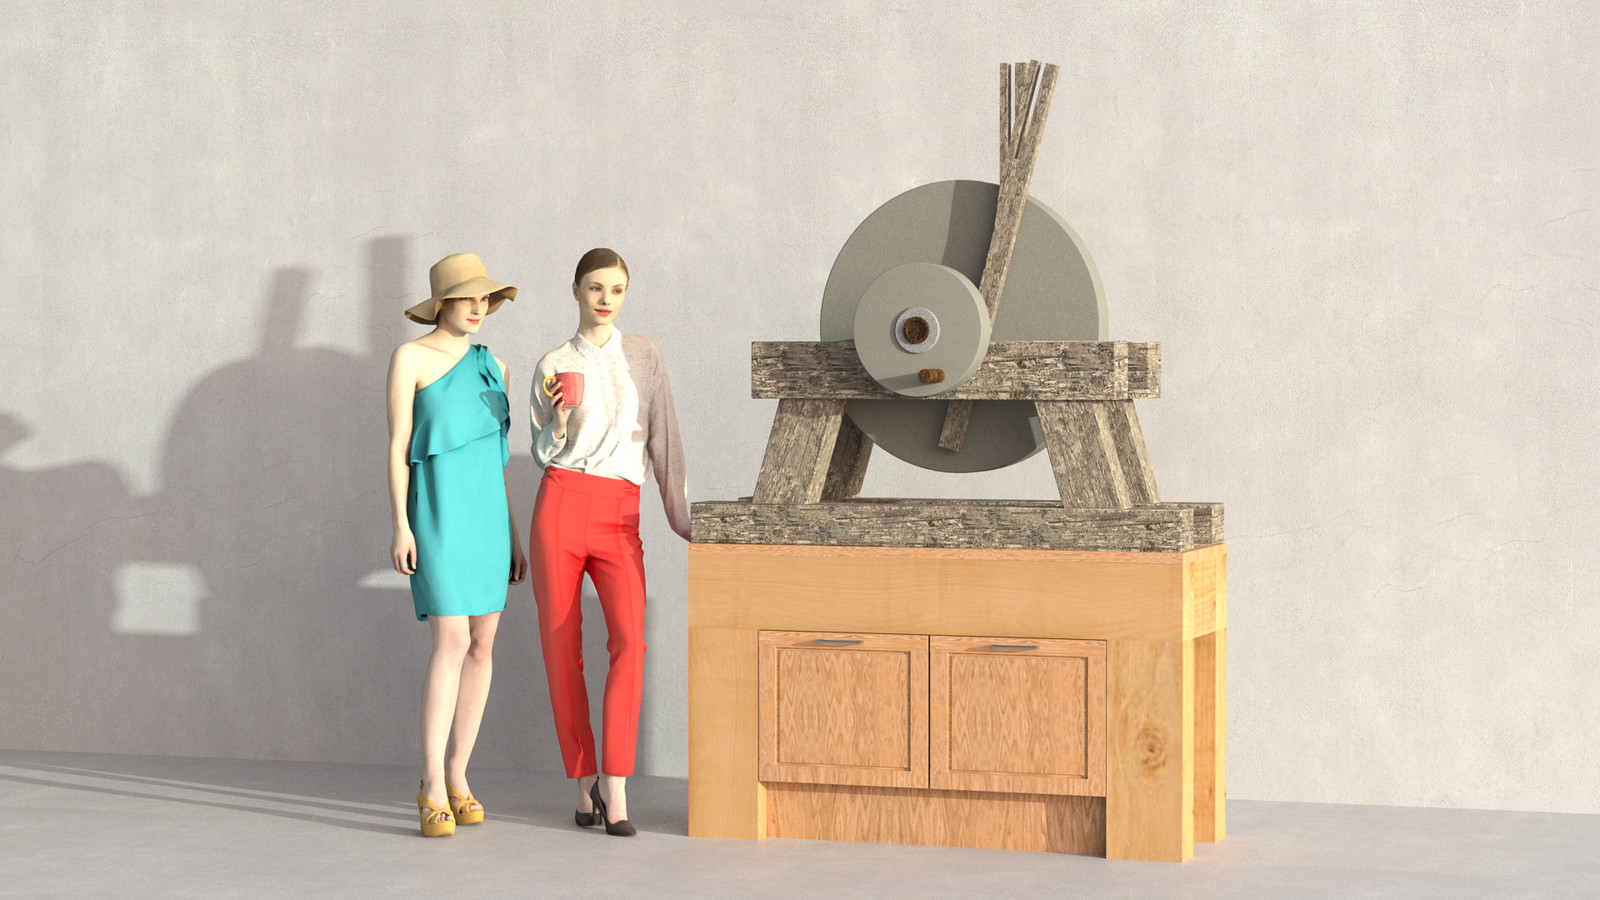 SketchUp + Thea Render  Rivendell Mill's Millstone 04  The 3d people are from AXYZ design collections found here: Collection 30 : http://bit.ly/2kS8pHx Collection 31 : http://bit.ly/2lJSkFu